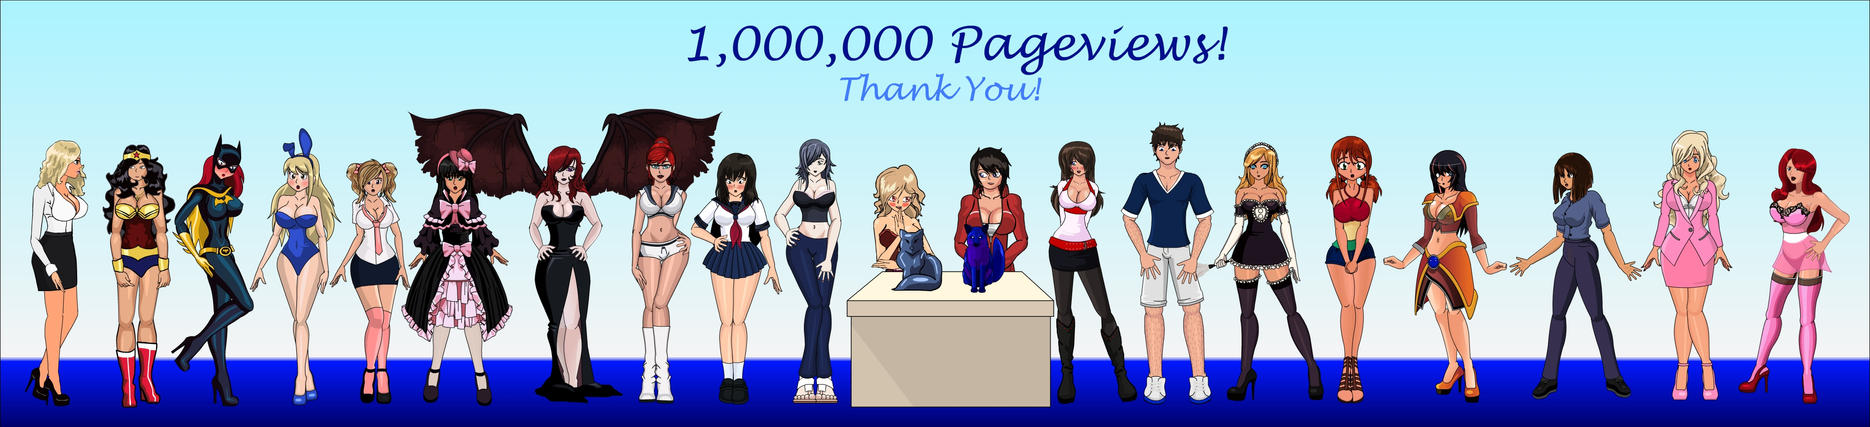 One Million Pageviews! by SapphireFoxx